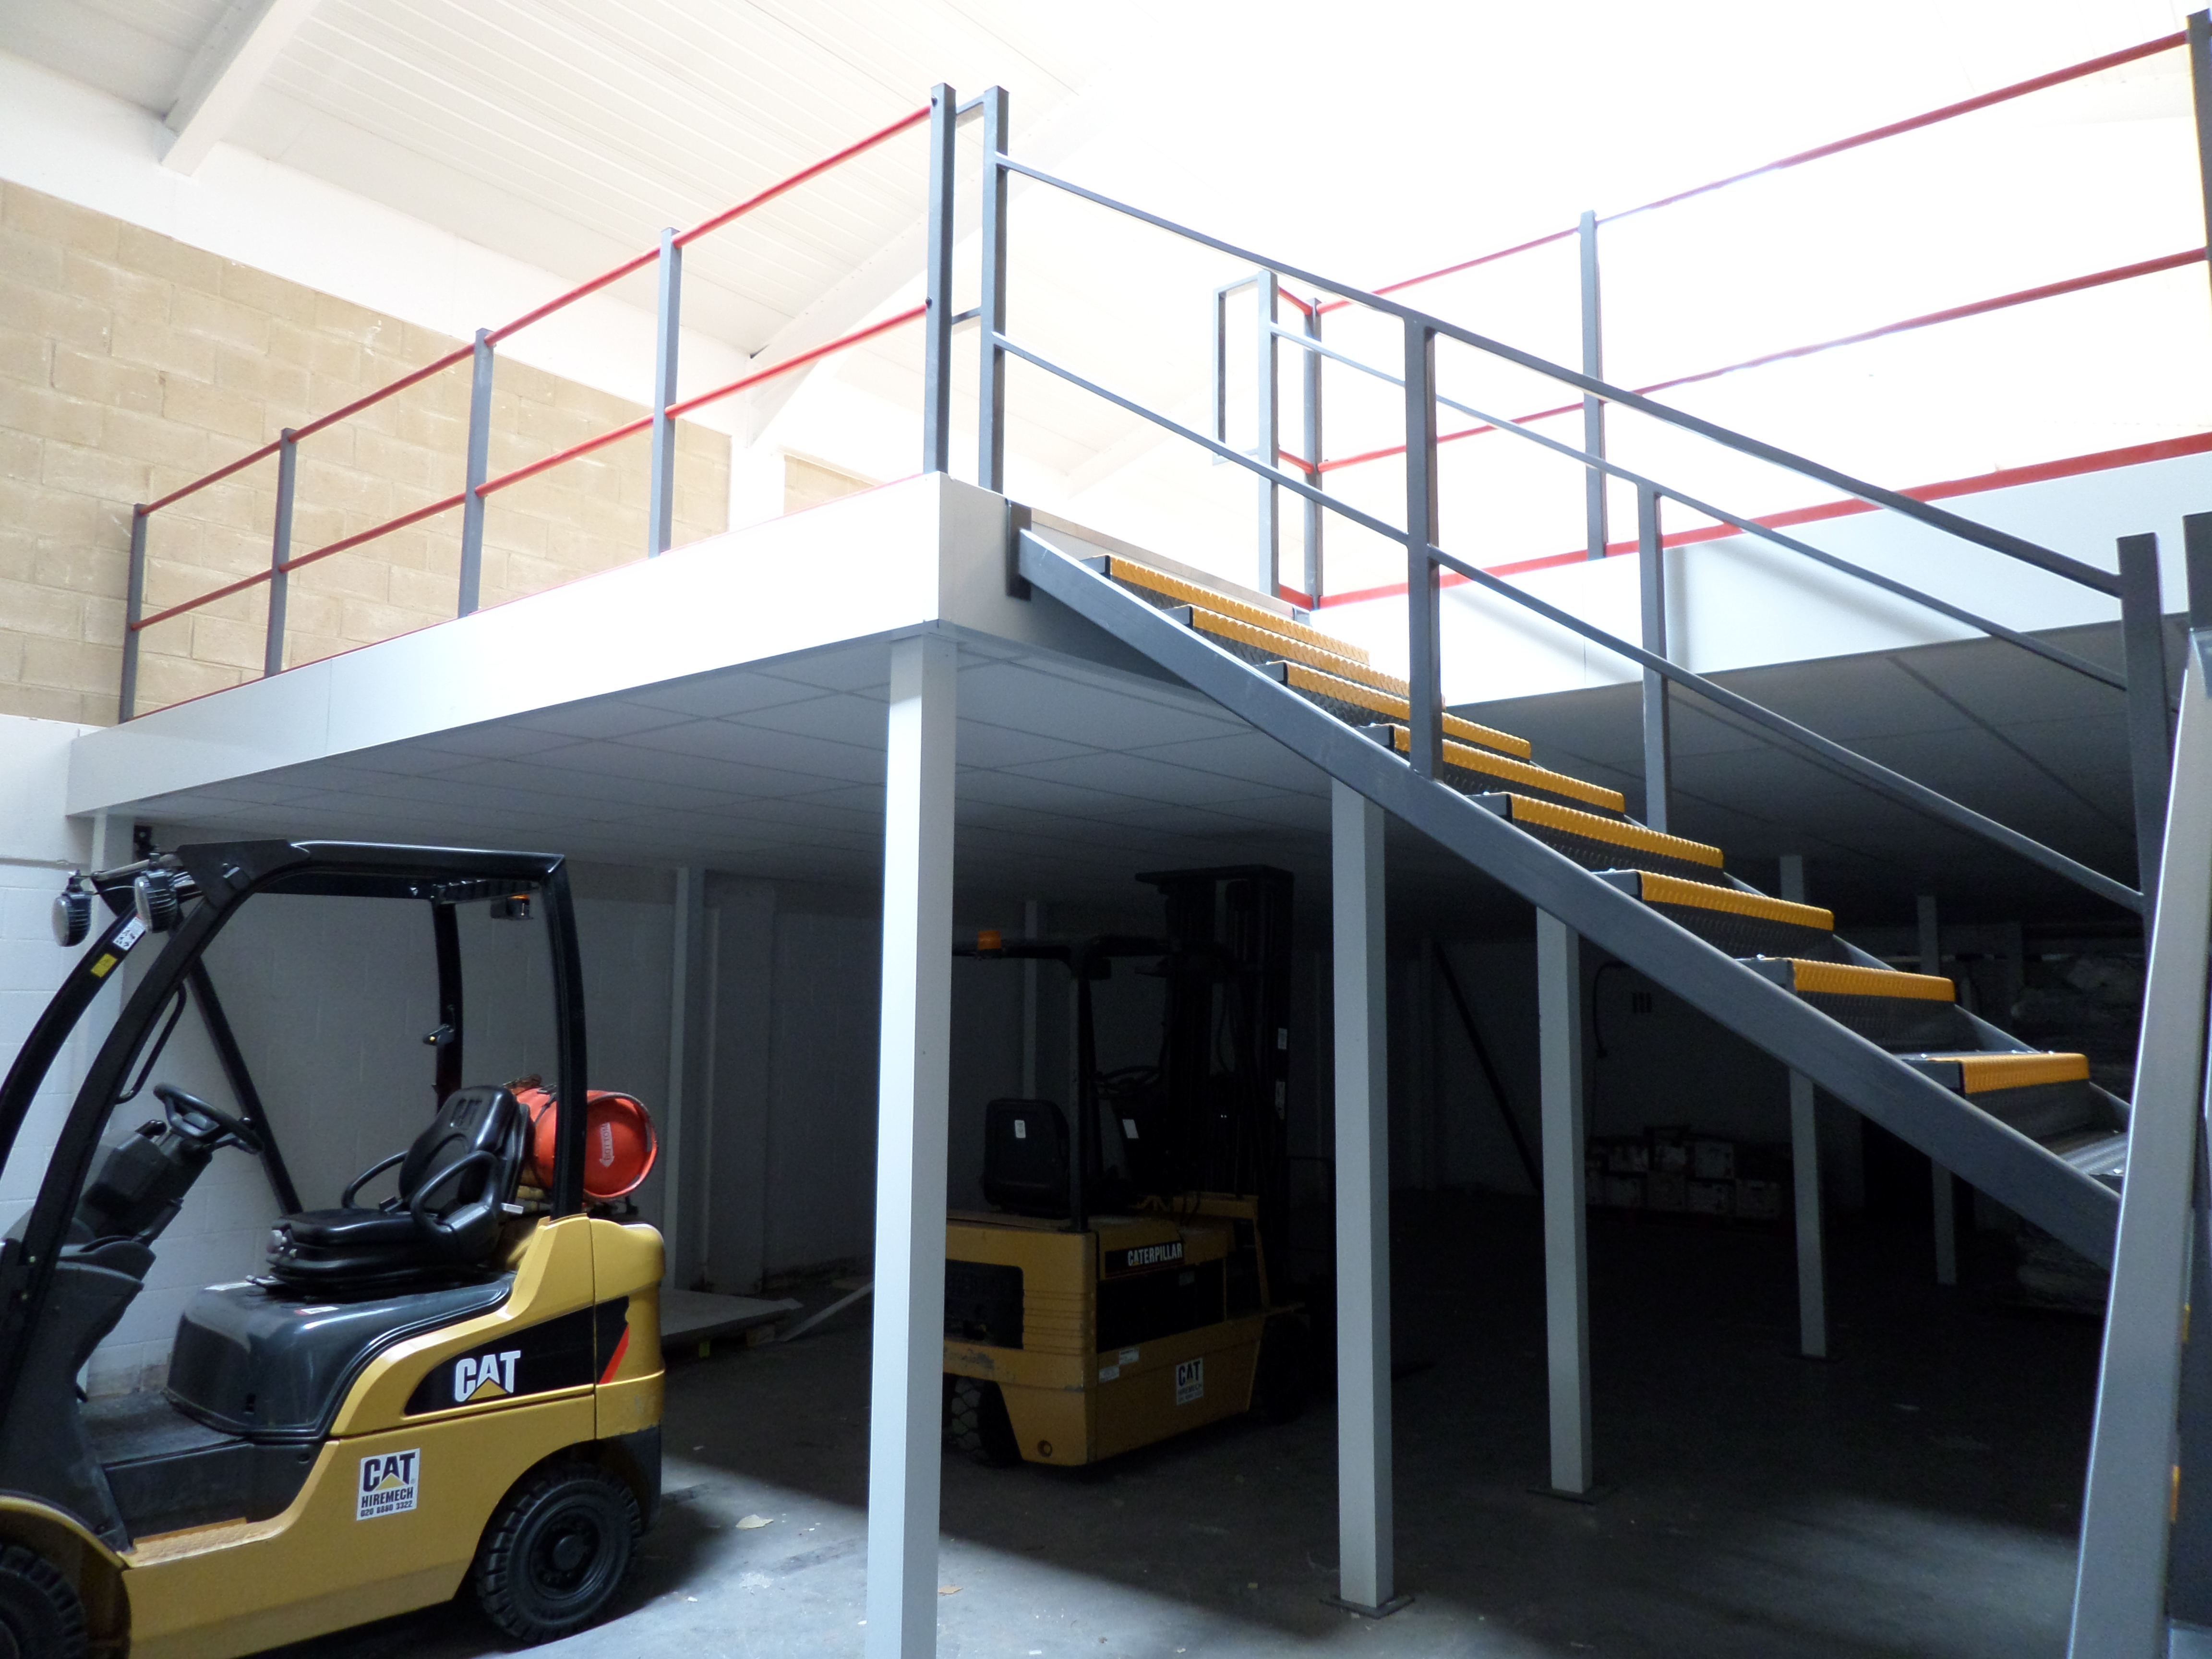 Mezzanine Floors Services : Mezzanine floors for your business romstor projects